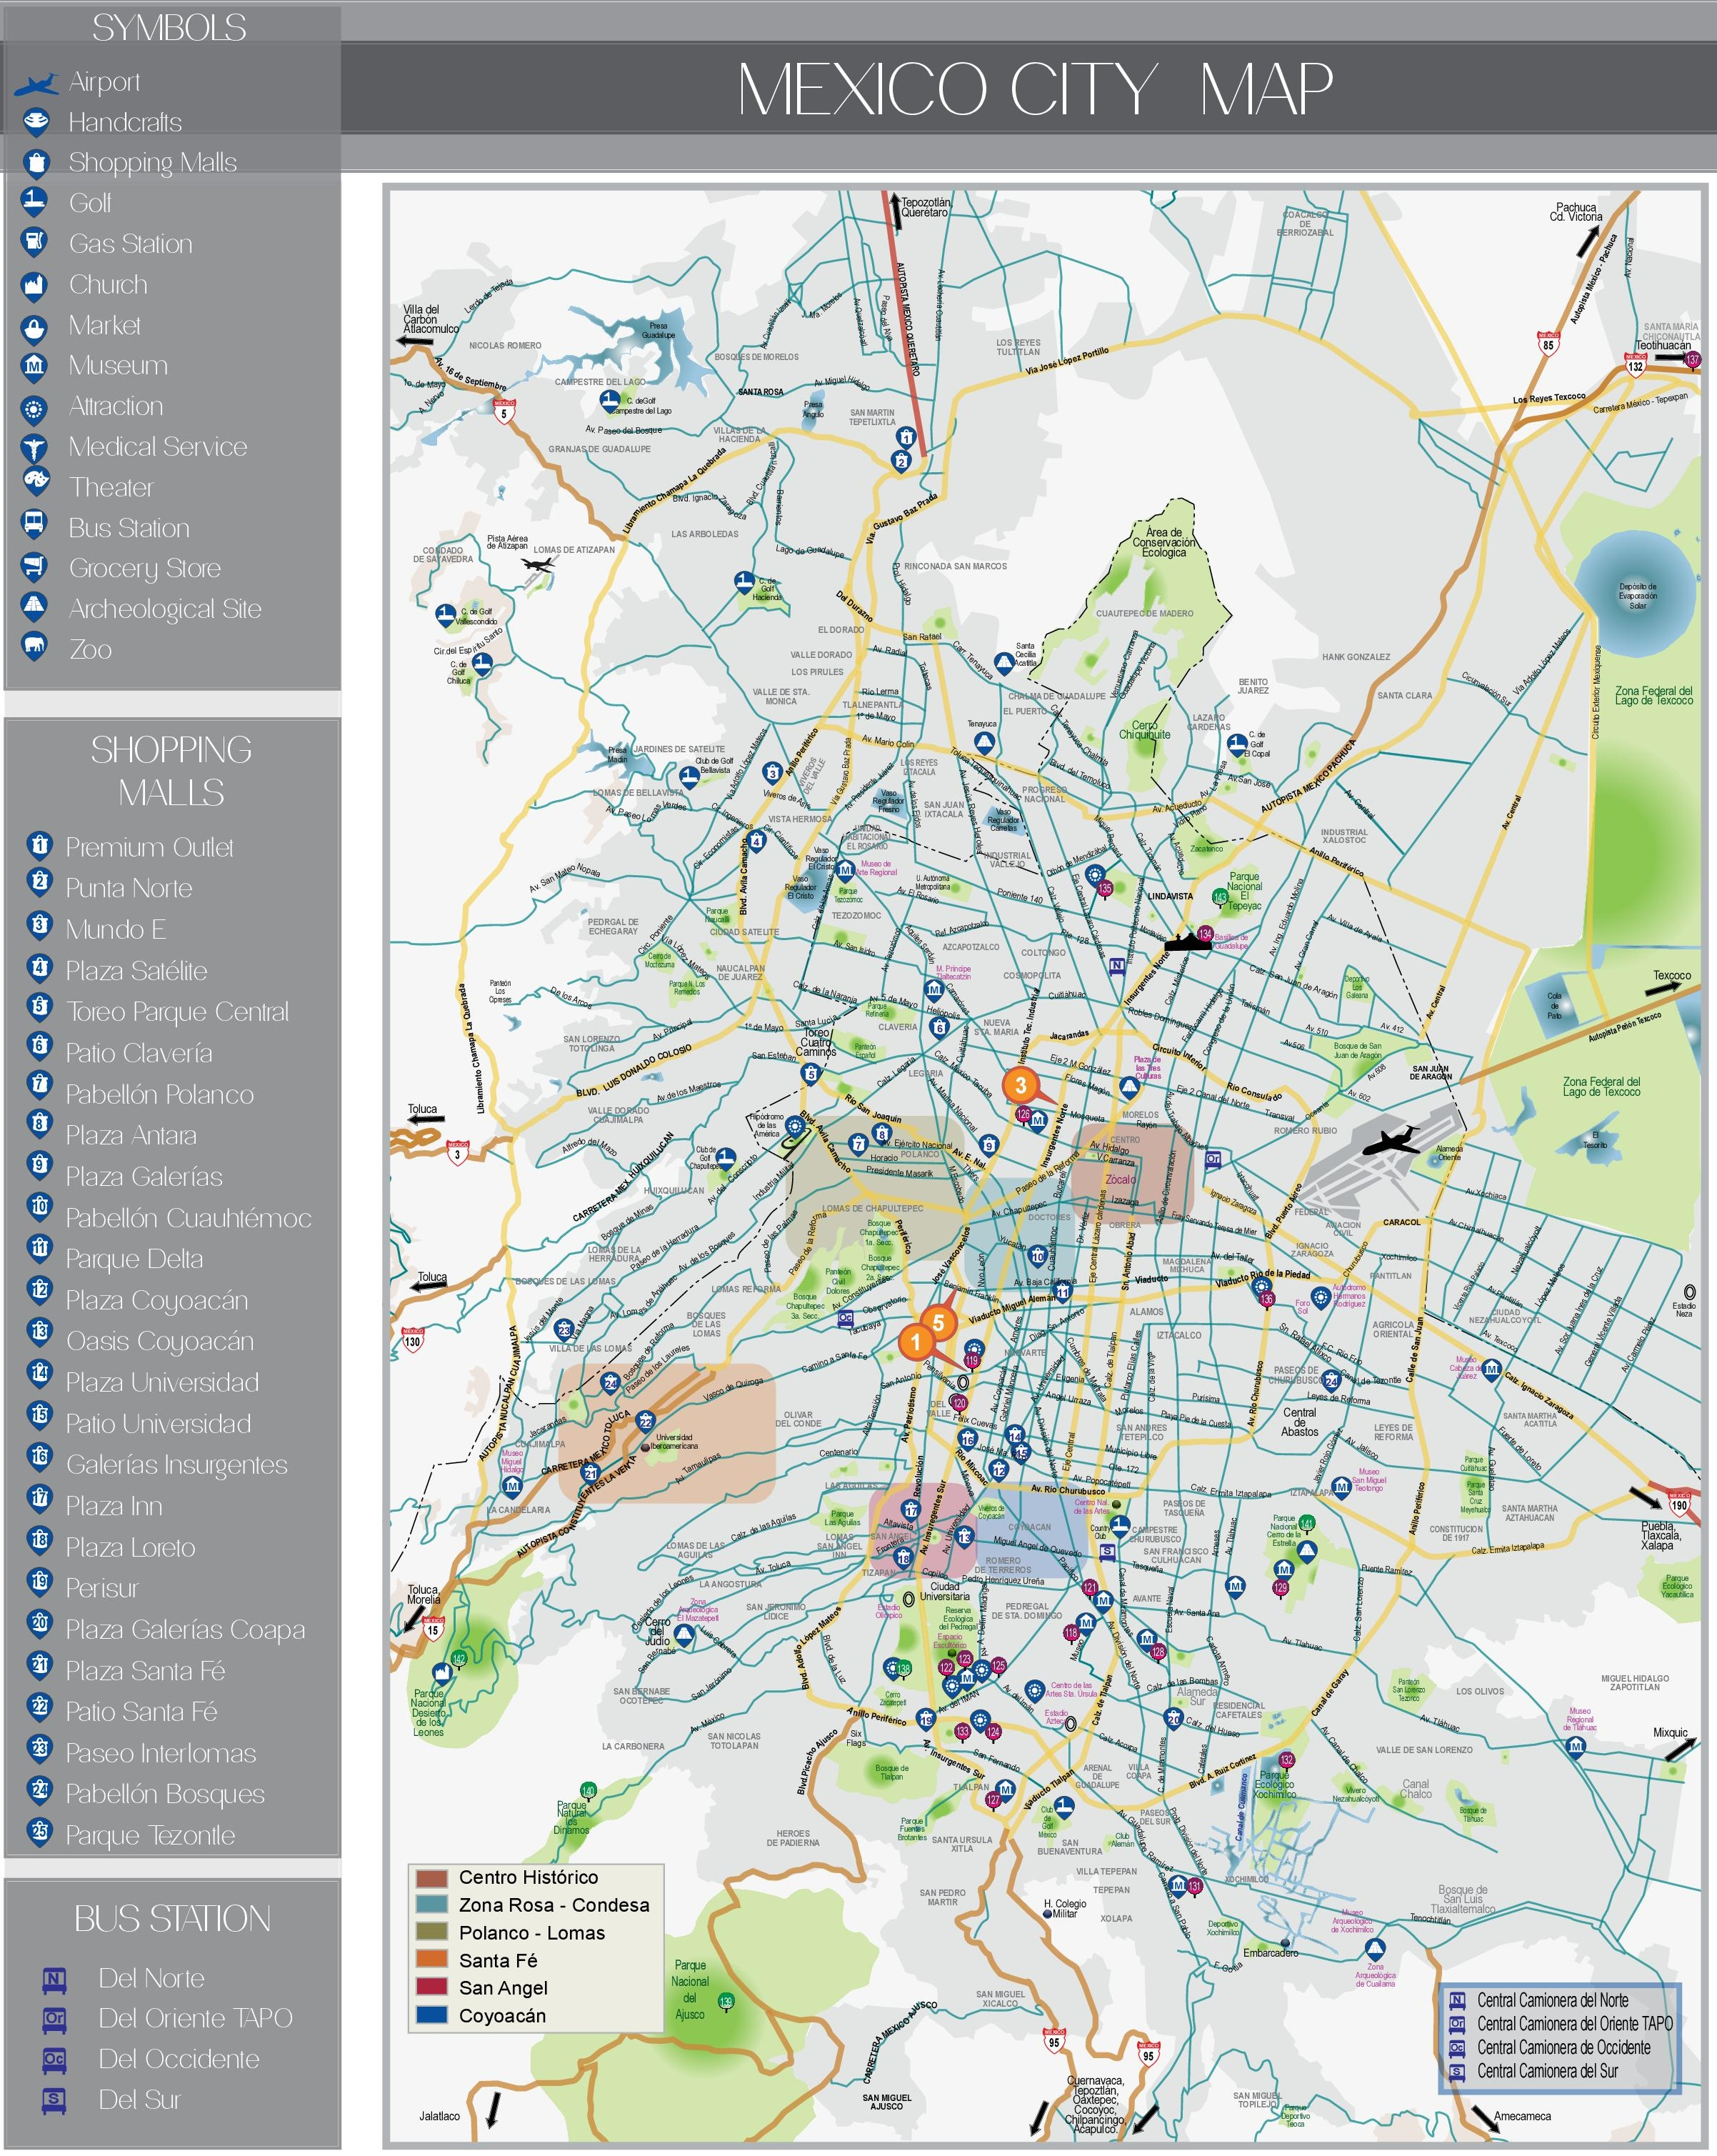 Mexico City Map Mexico City tourist attractions map Mexico City Map